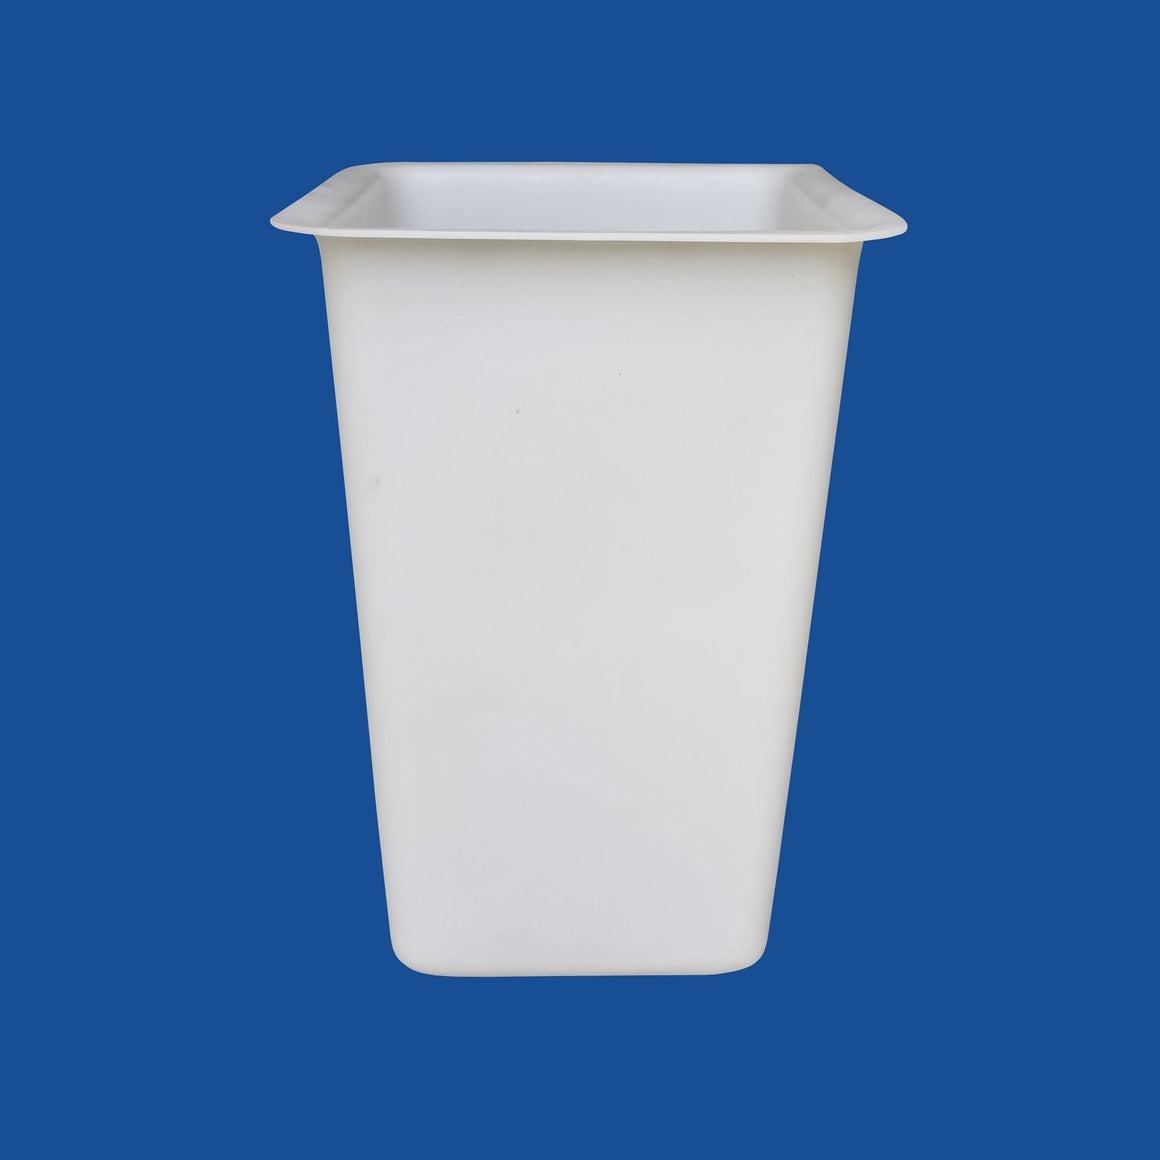 "Bucket Liner - 24"" x 24"" x 42"" - Single Man - Bucket Truck Parts"